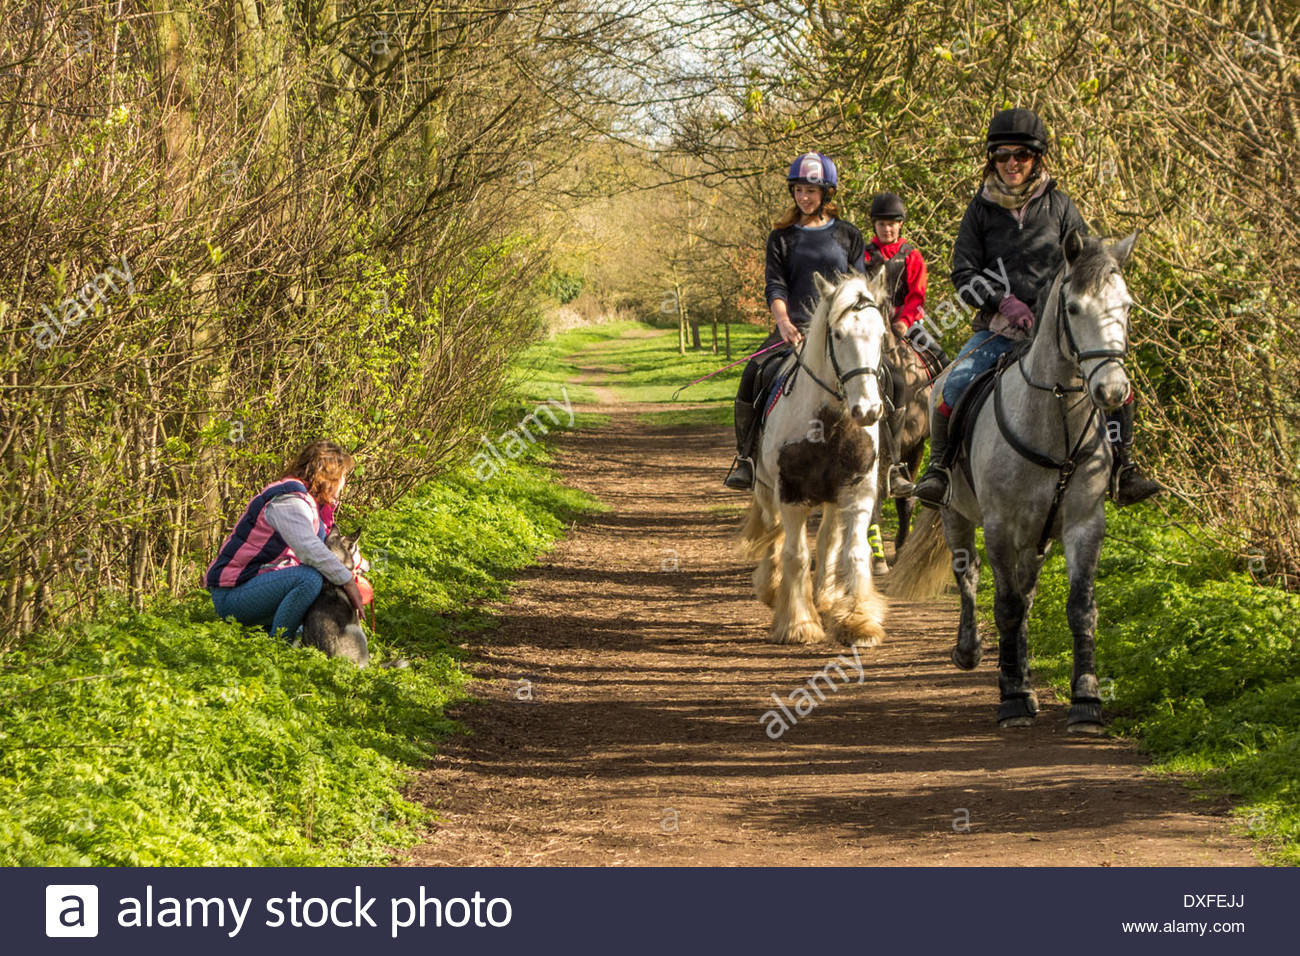 A dog owner keeps her dog calm as a group of horseriders pass by on a rural bridleway near to Fulbourn, Cambridge - Stock Image